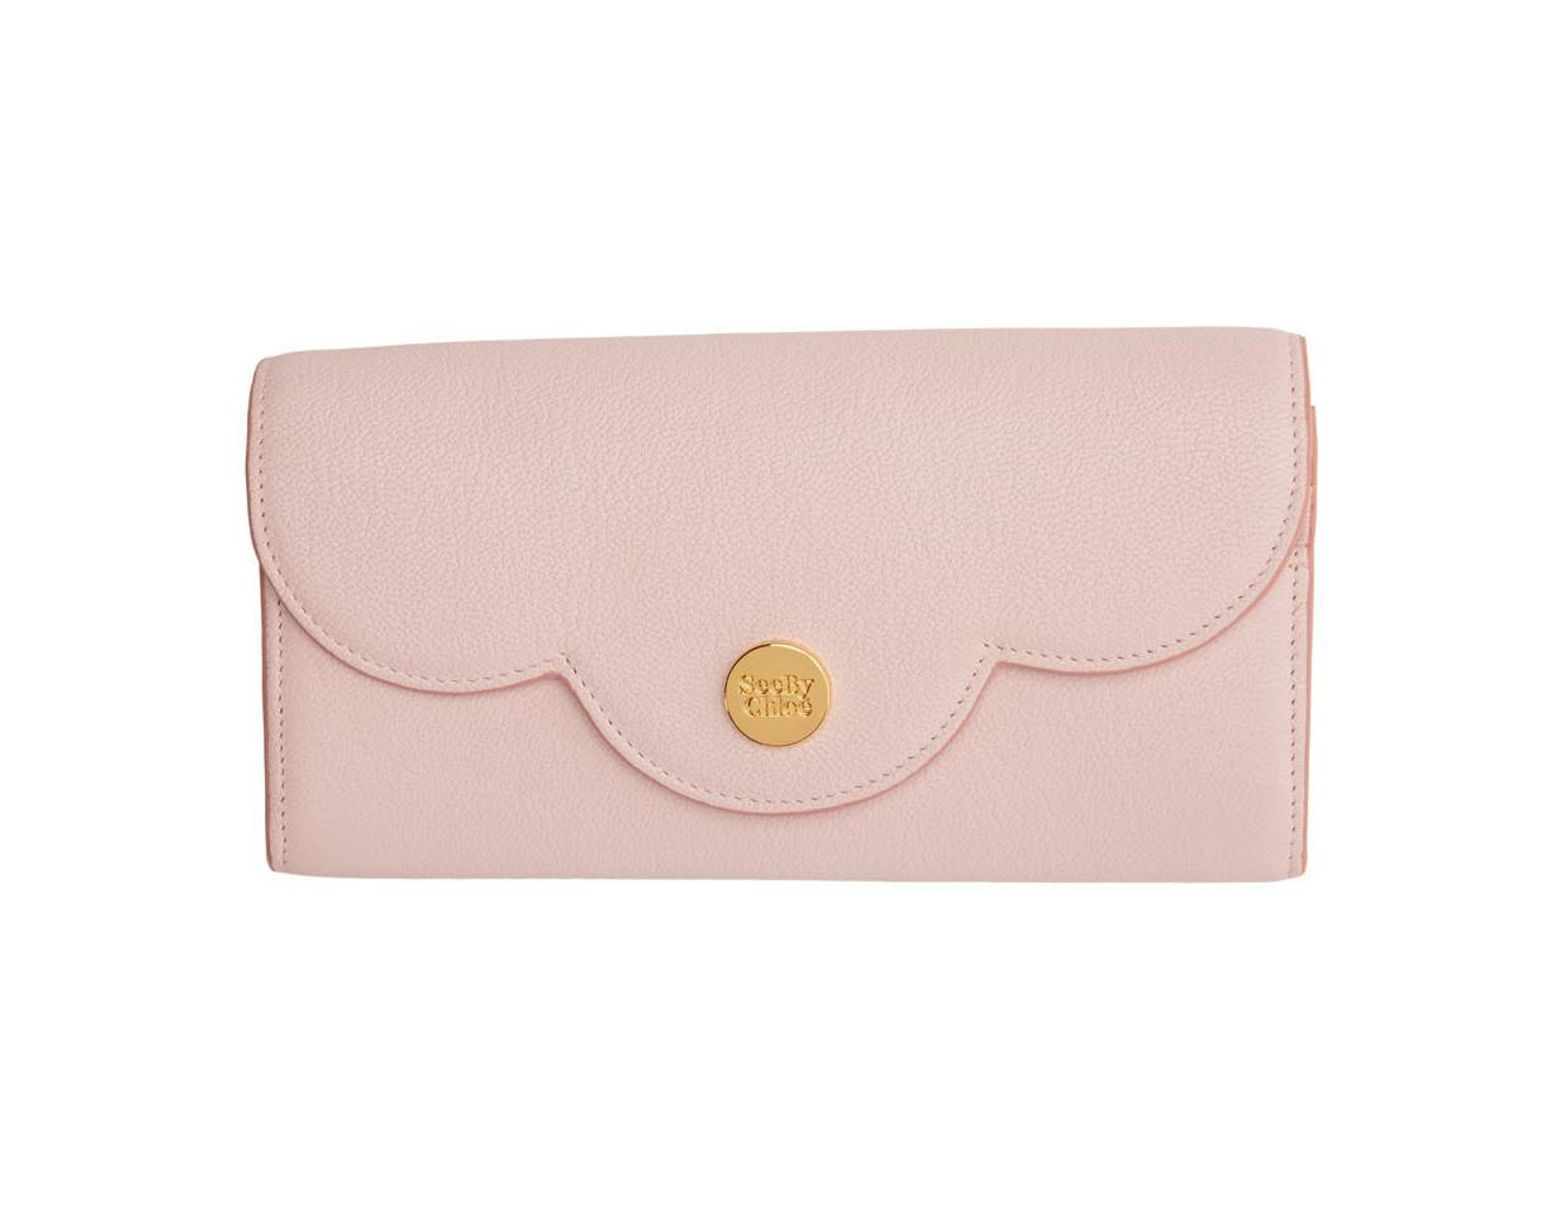 3803e49c45 See By Chloé Pink Polina Long Wallet in Pink - Lyst